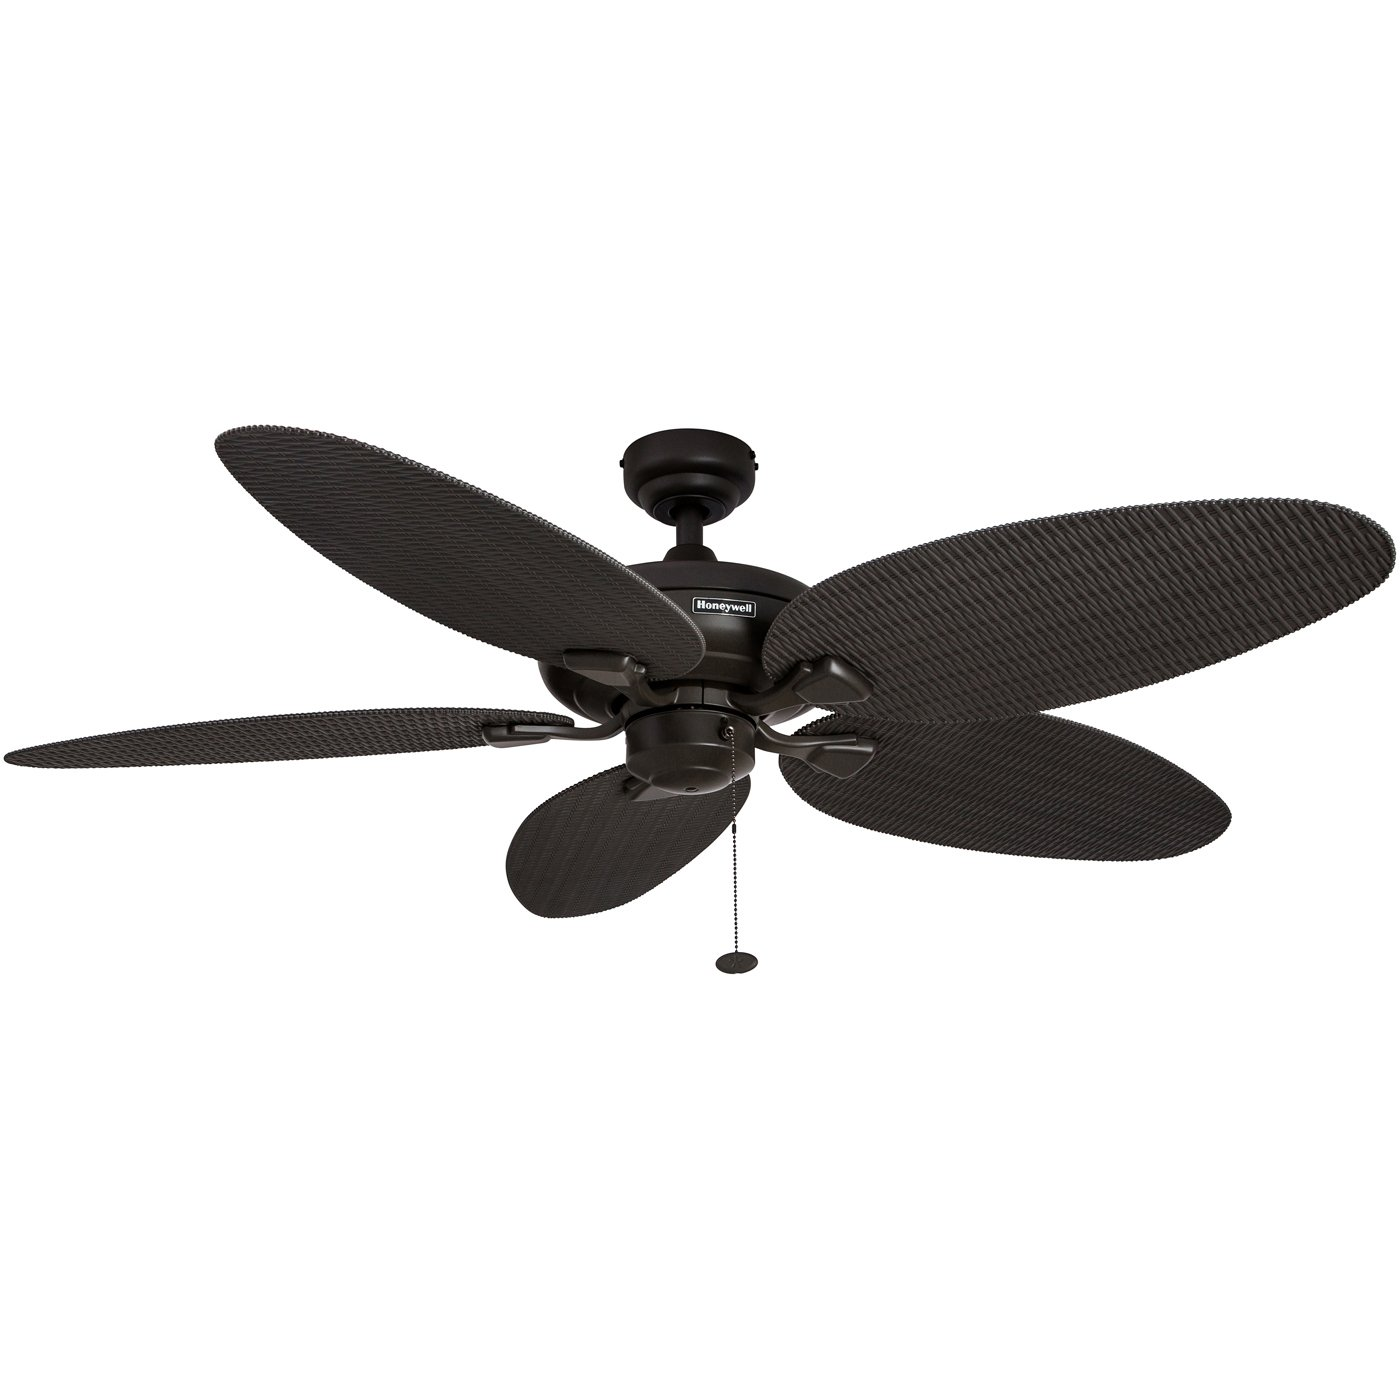 Honeywell Duvall 52-Inch Tropical Ceiling Fan with Five Wet Rated Wicker Blades, Indoor/Outdoor Rated, Bronze by Honeywell Ceiling Fans